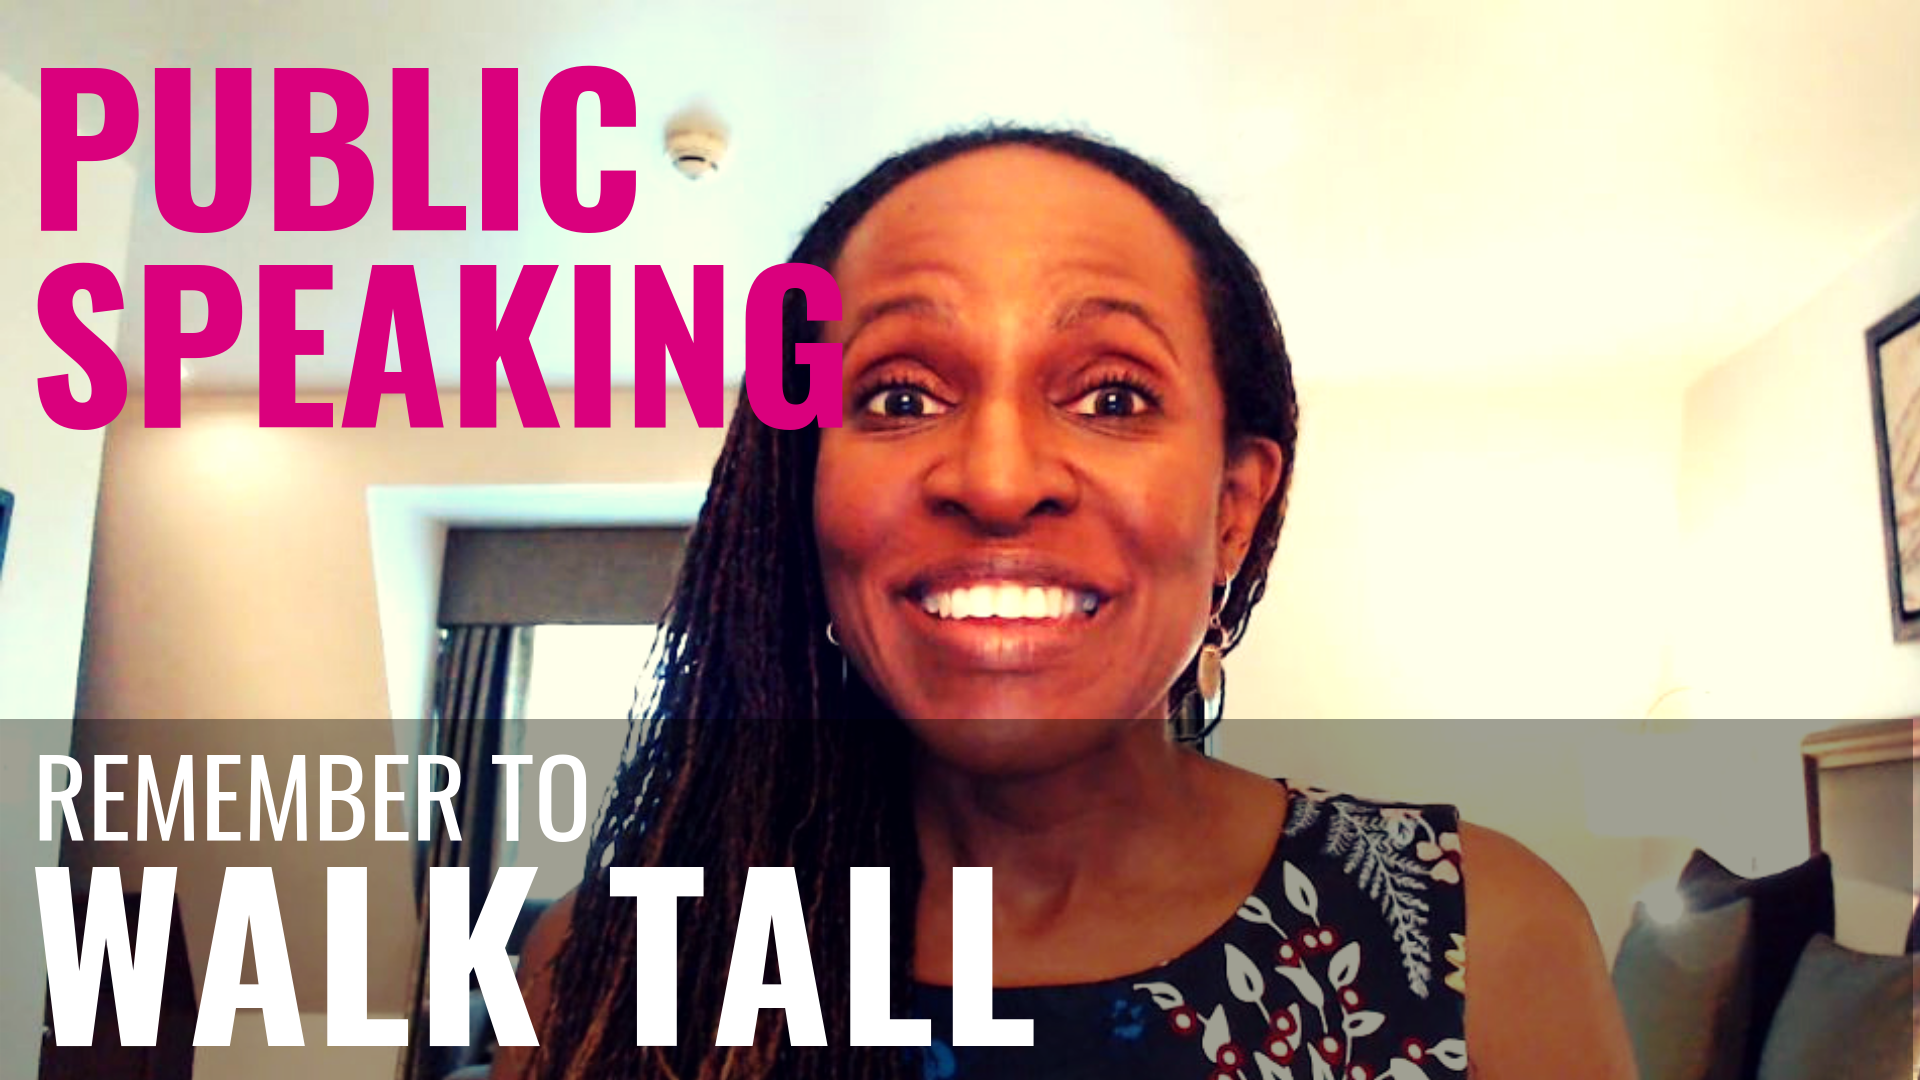 PUBLIC SPEAKING - Remember to WALK TALL